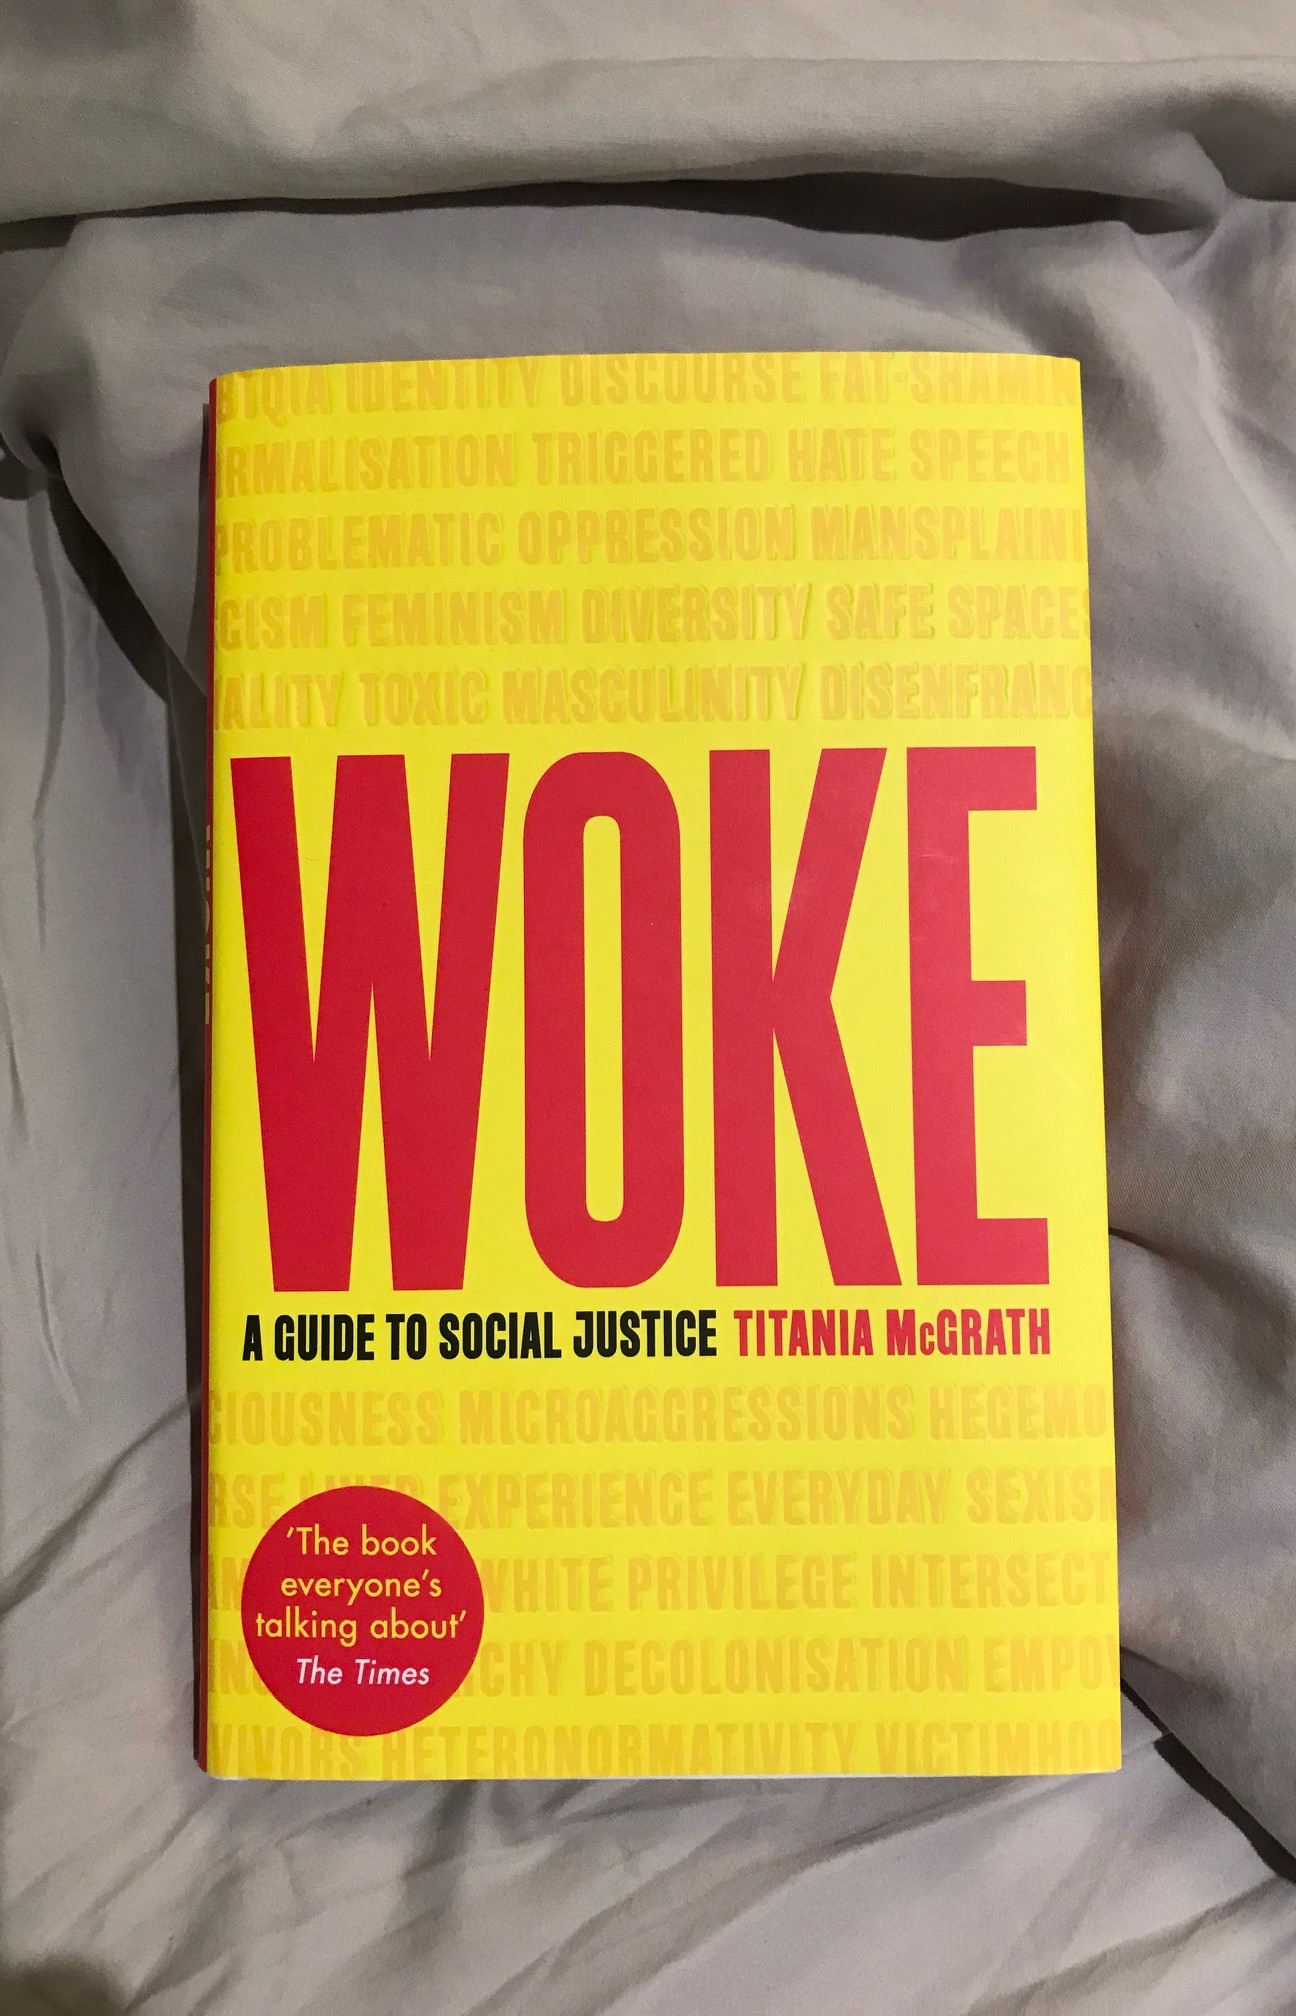 Book Review: Woke, A Guide to Social Justice by Titania McGrath